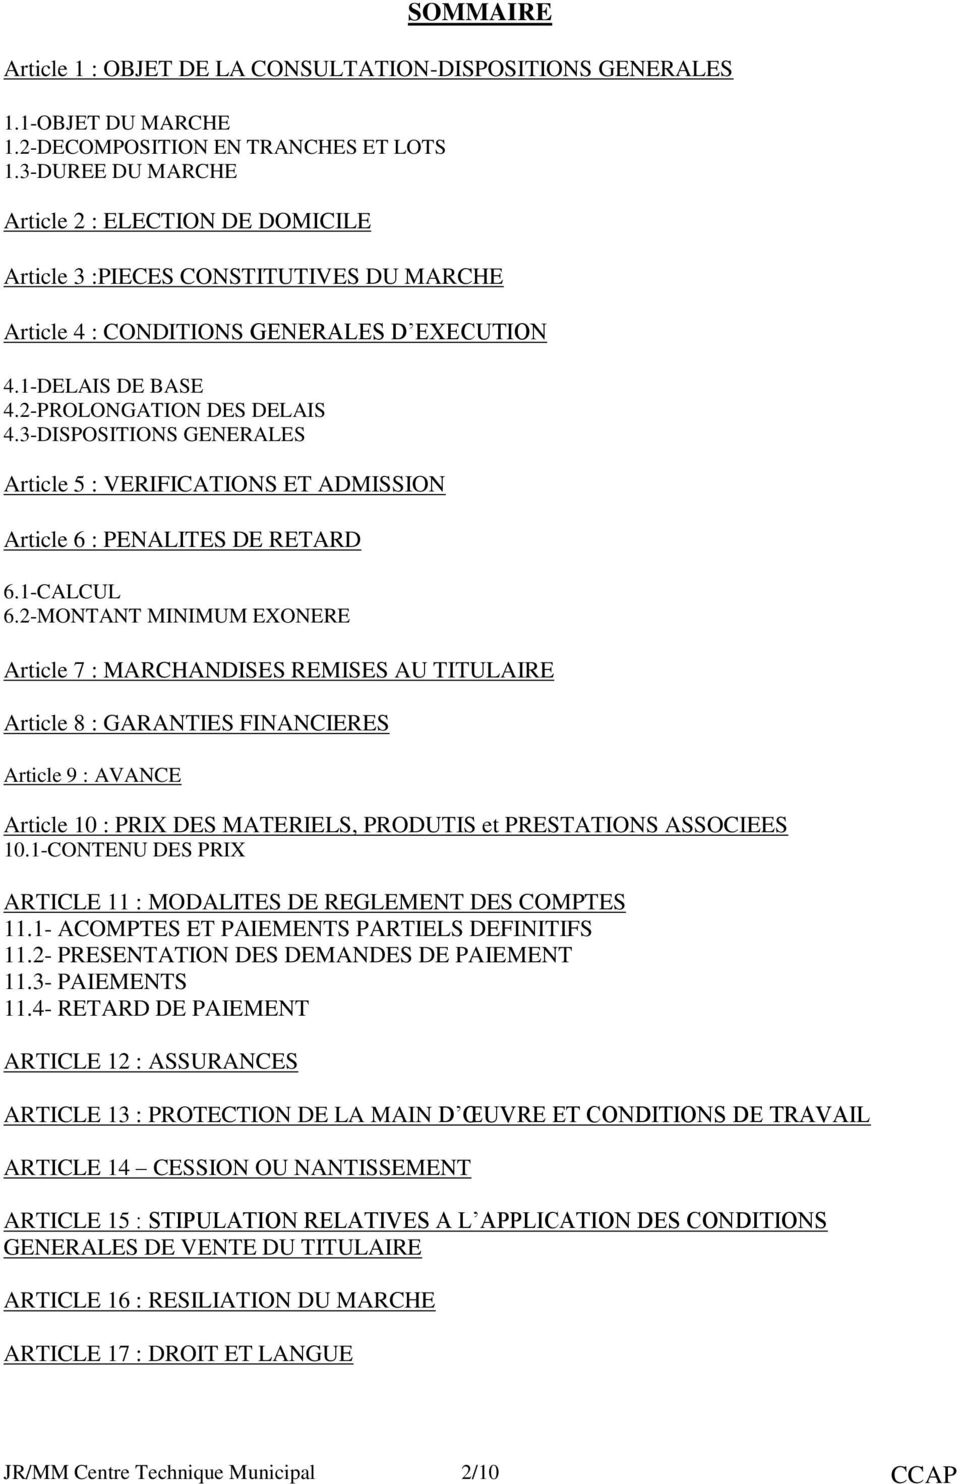 3-DISPOSITIONS GENERALES Article 5 : VERIFICATIONS ET ADMISSION Article 6 : PENALITES DE RETARD 6.1-CALCUL 6.